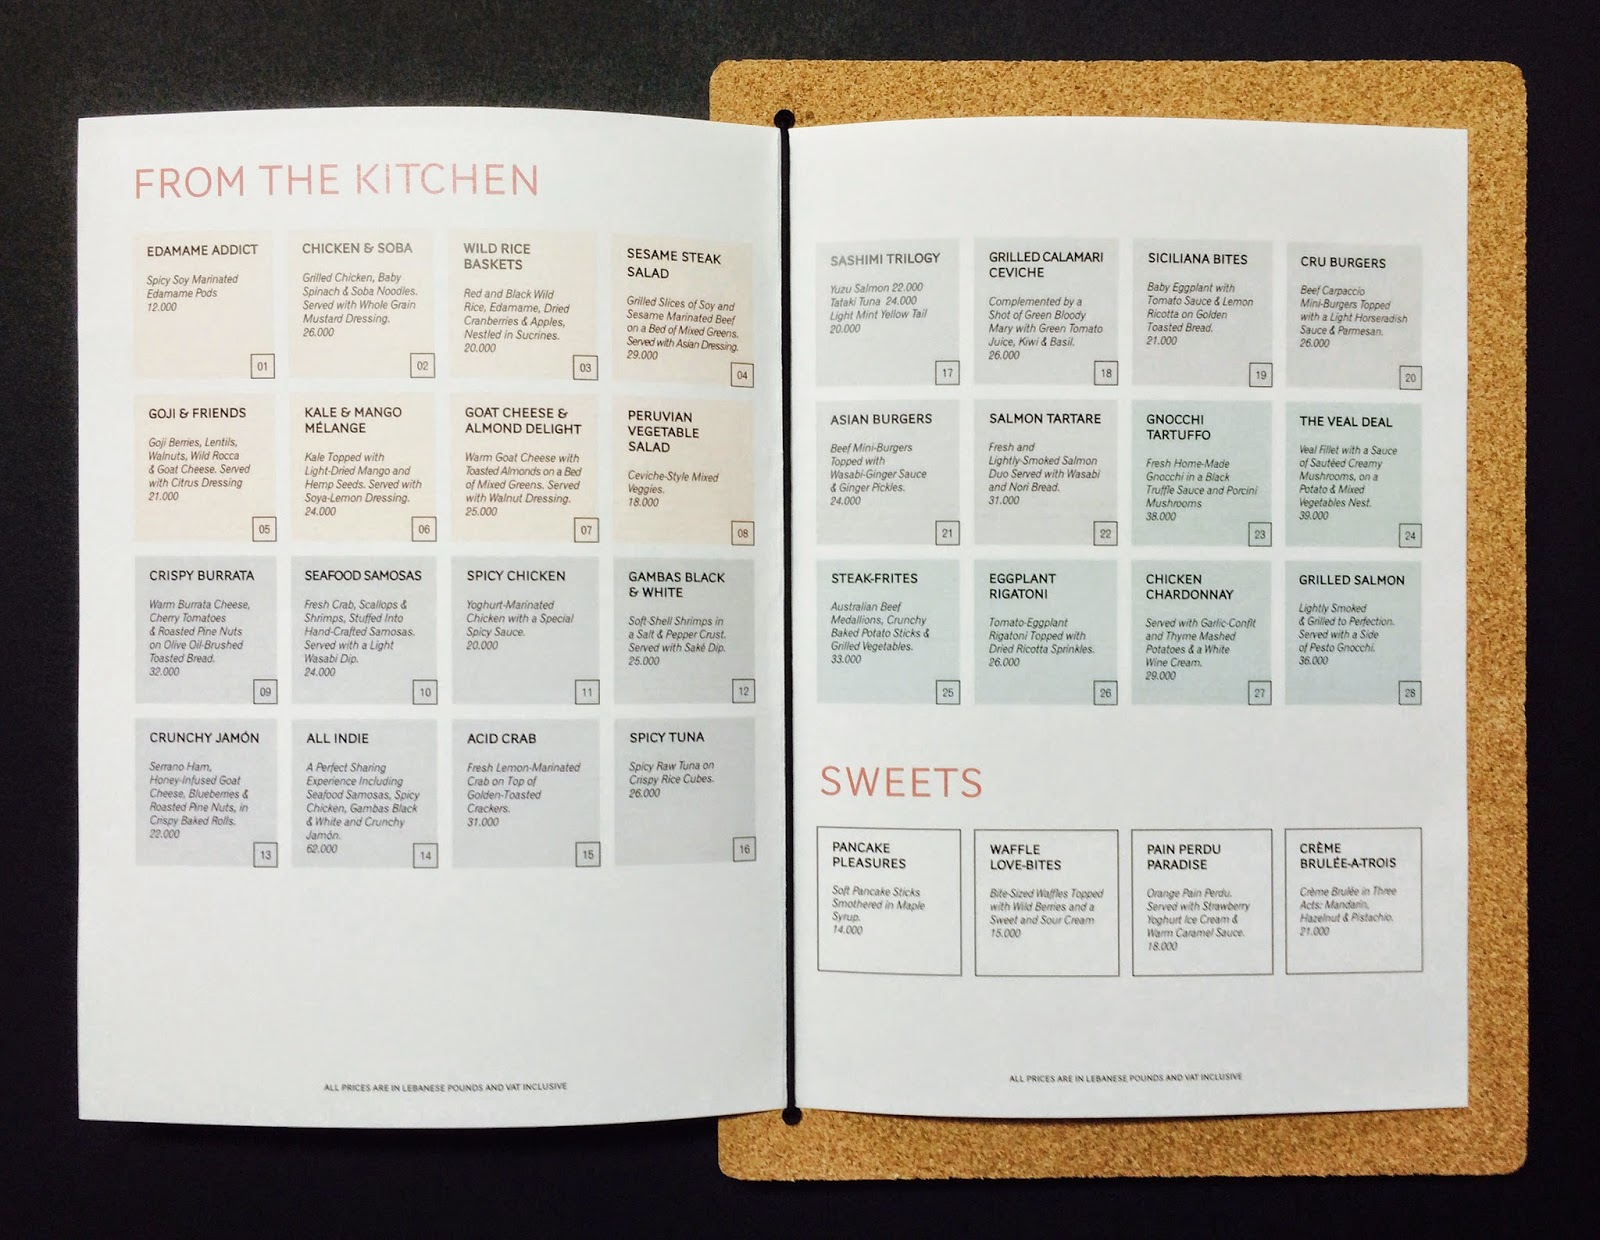 This is how you design a menu for the Lebanese & Middle Eastern market - Indie Beirut menu by Paperview Design